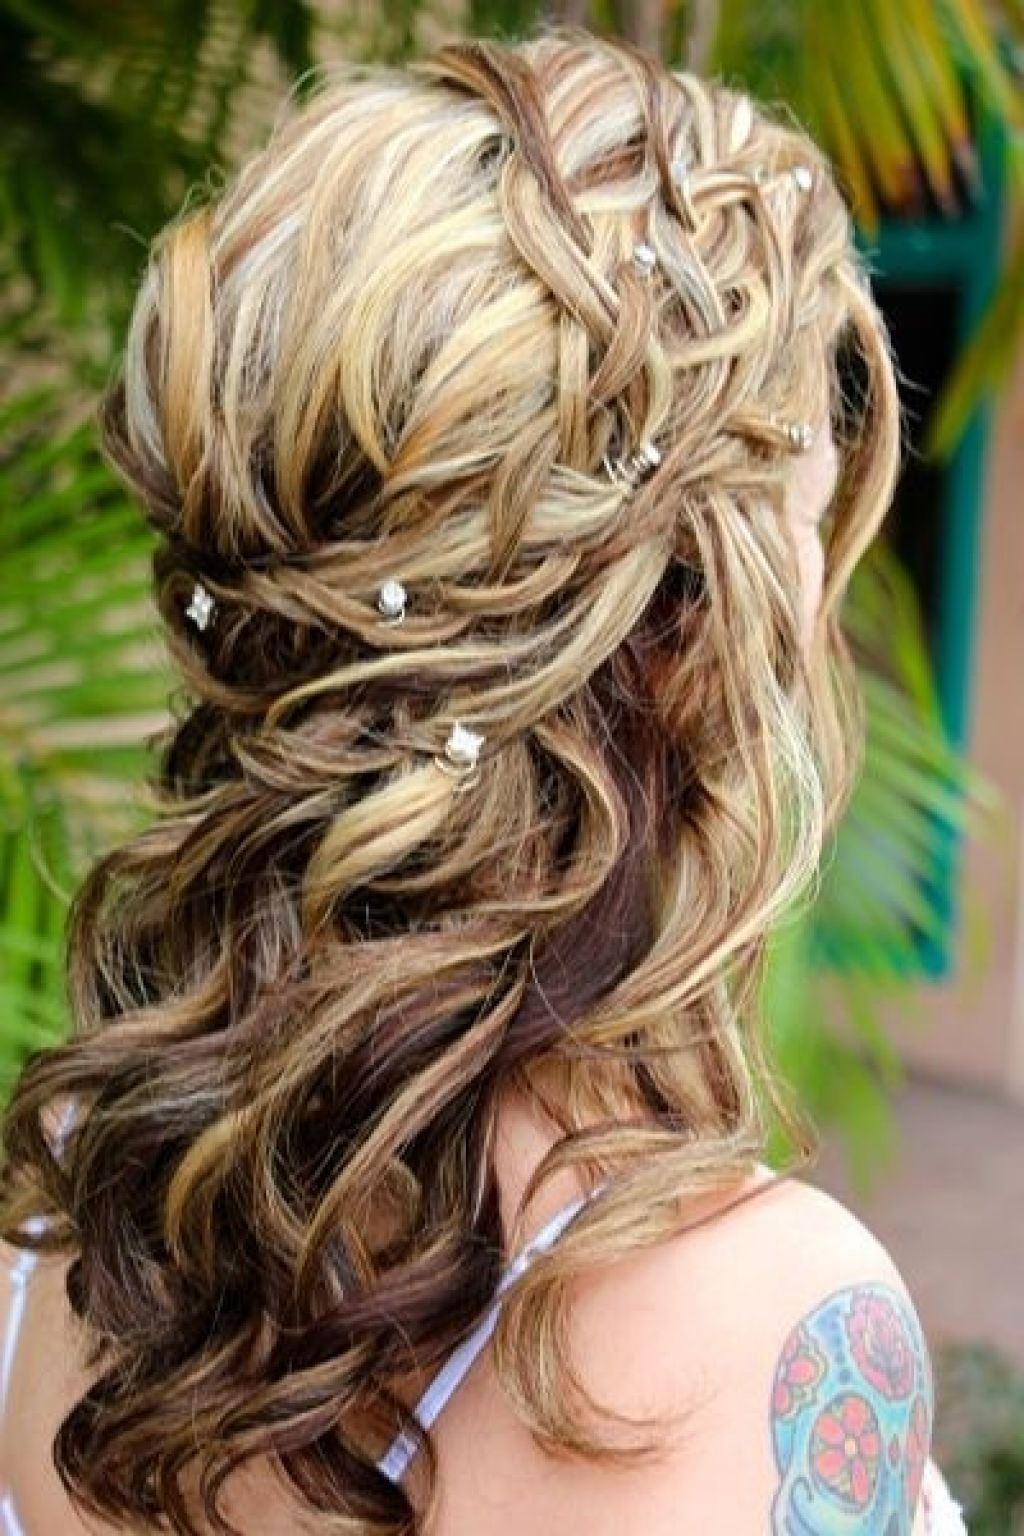 Newest Half Up Half Down With Braid Wedding Hairstyles Regarding Ideas Weddingyles Half Up Down For Short Hair Shoulder Length (View 11 of 15)